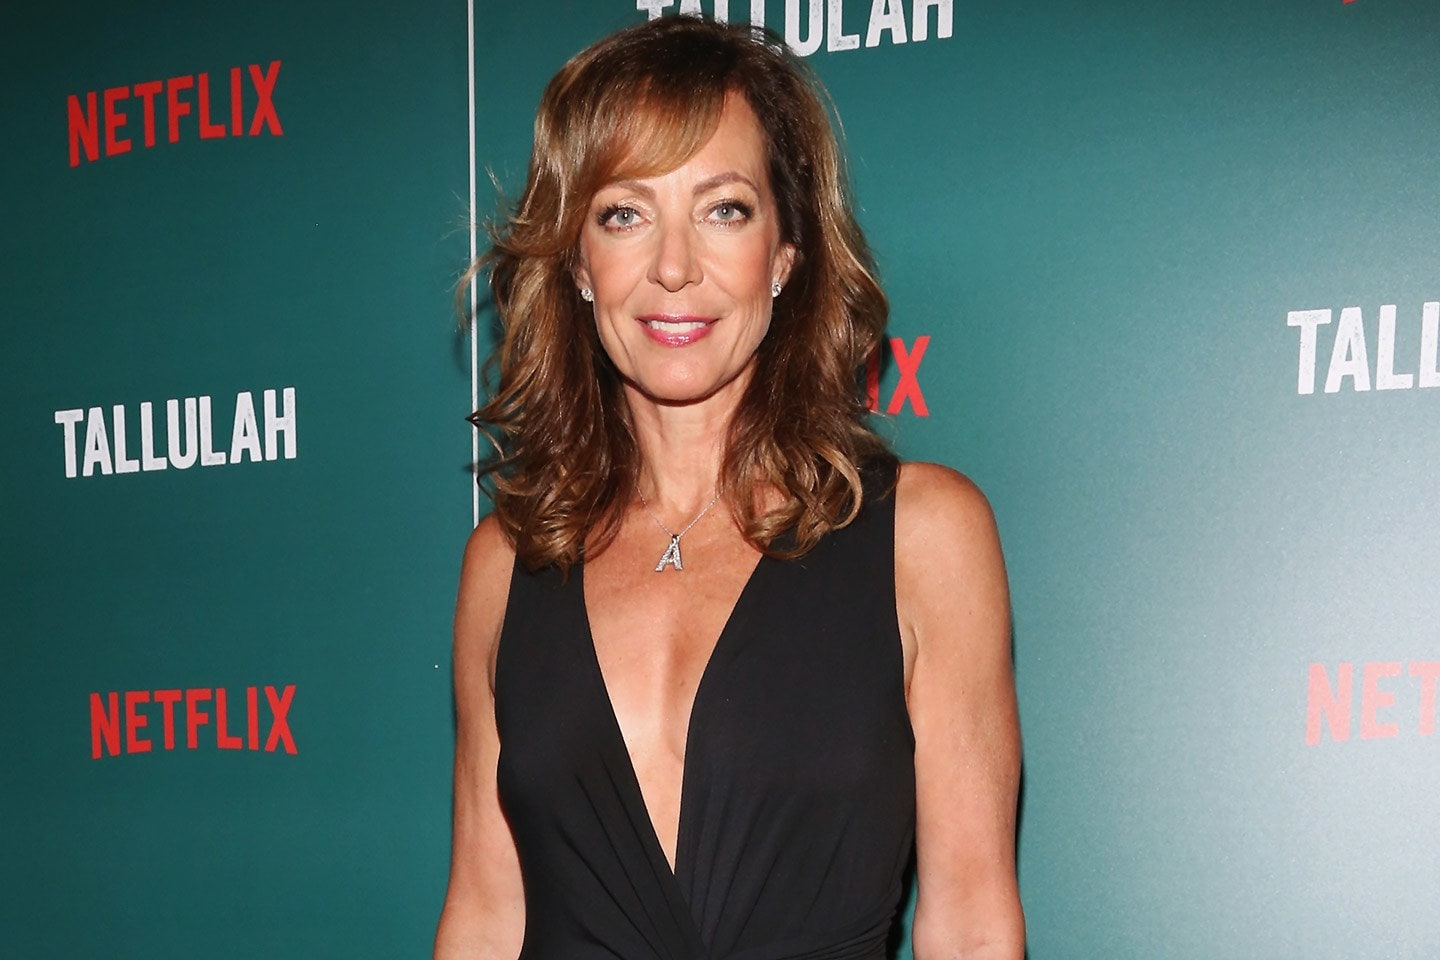 Allison Janney HD Desktop Wallpapers 7wallpapersnet 1440x960